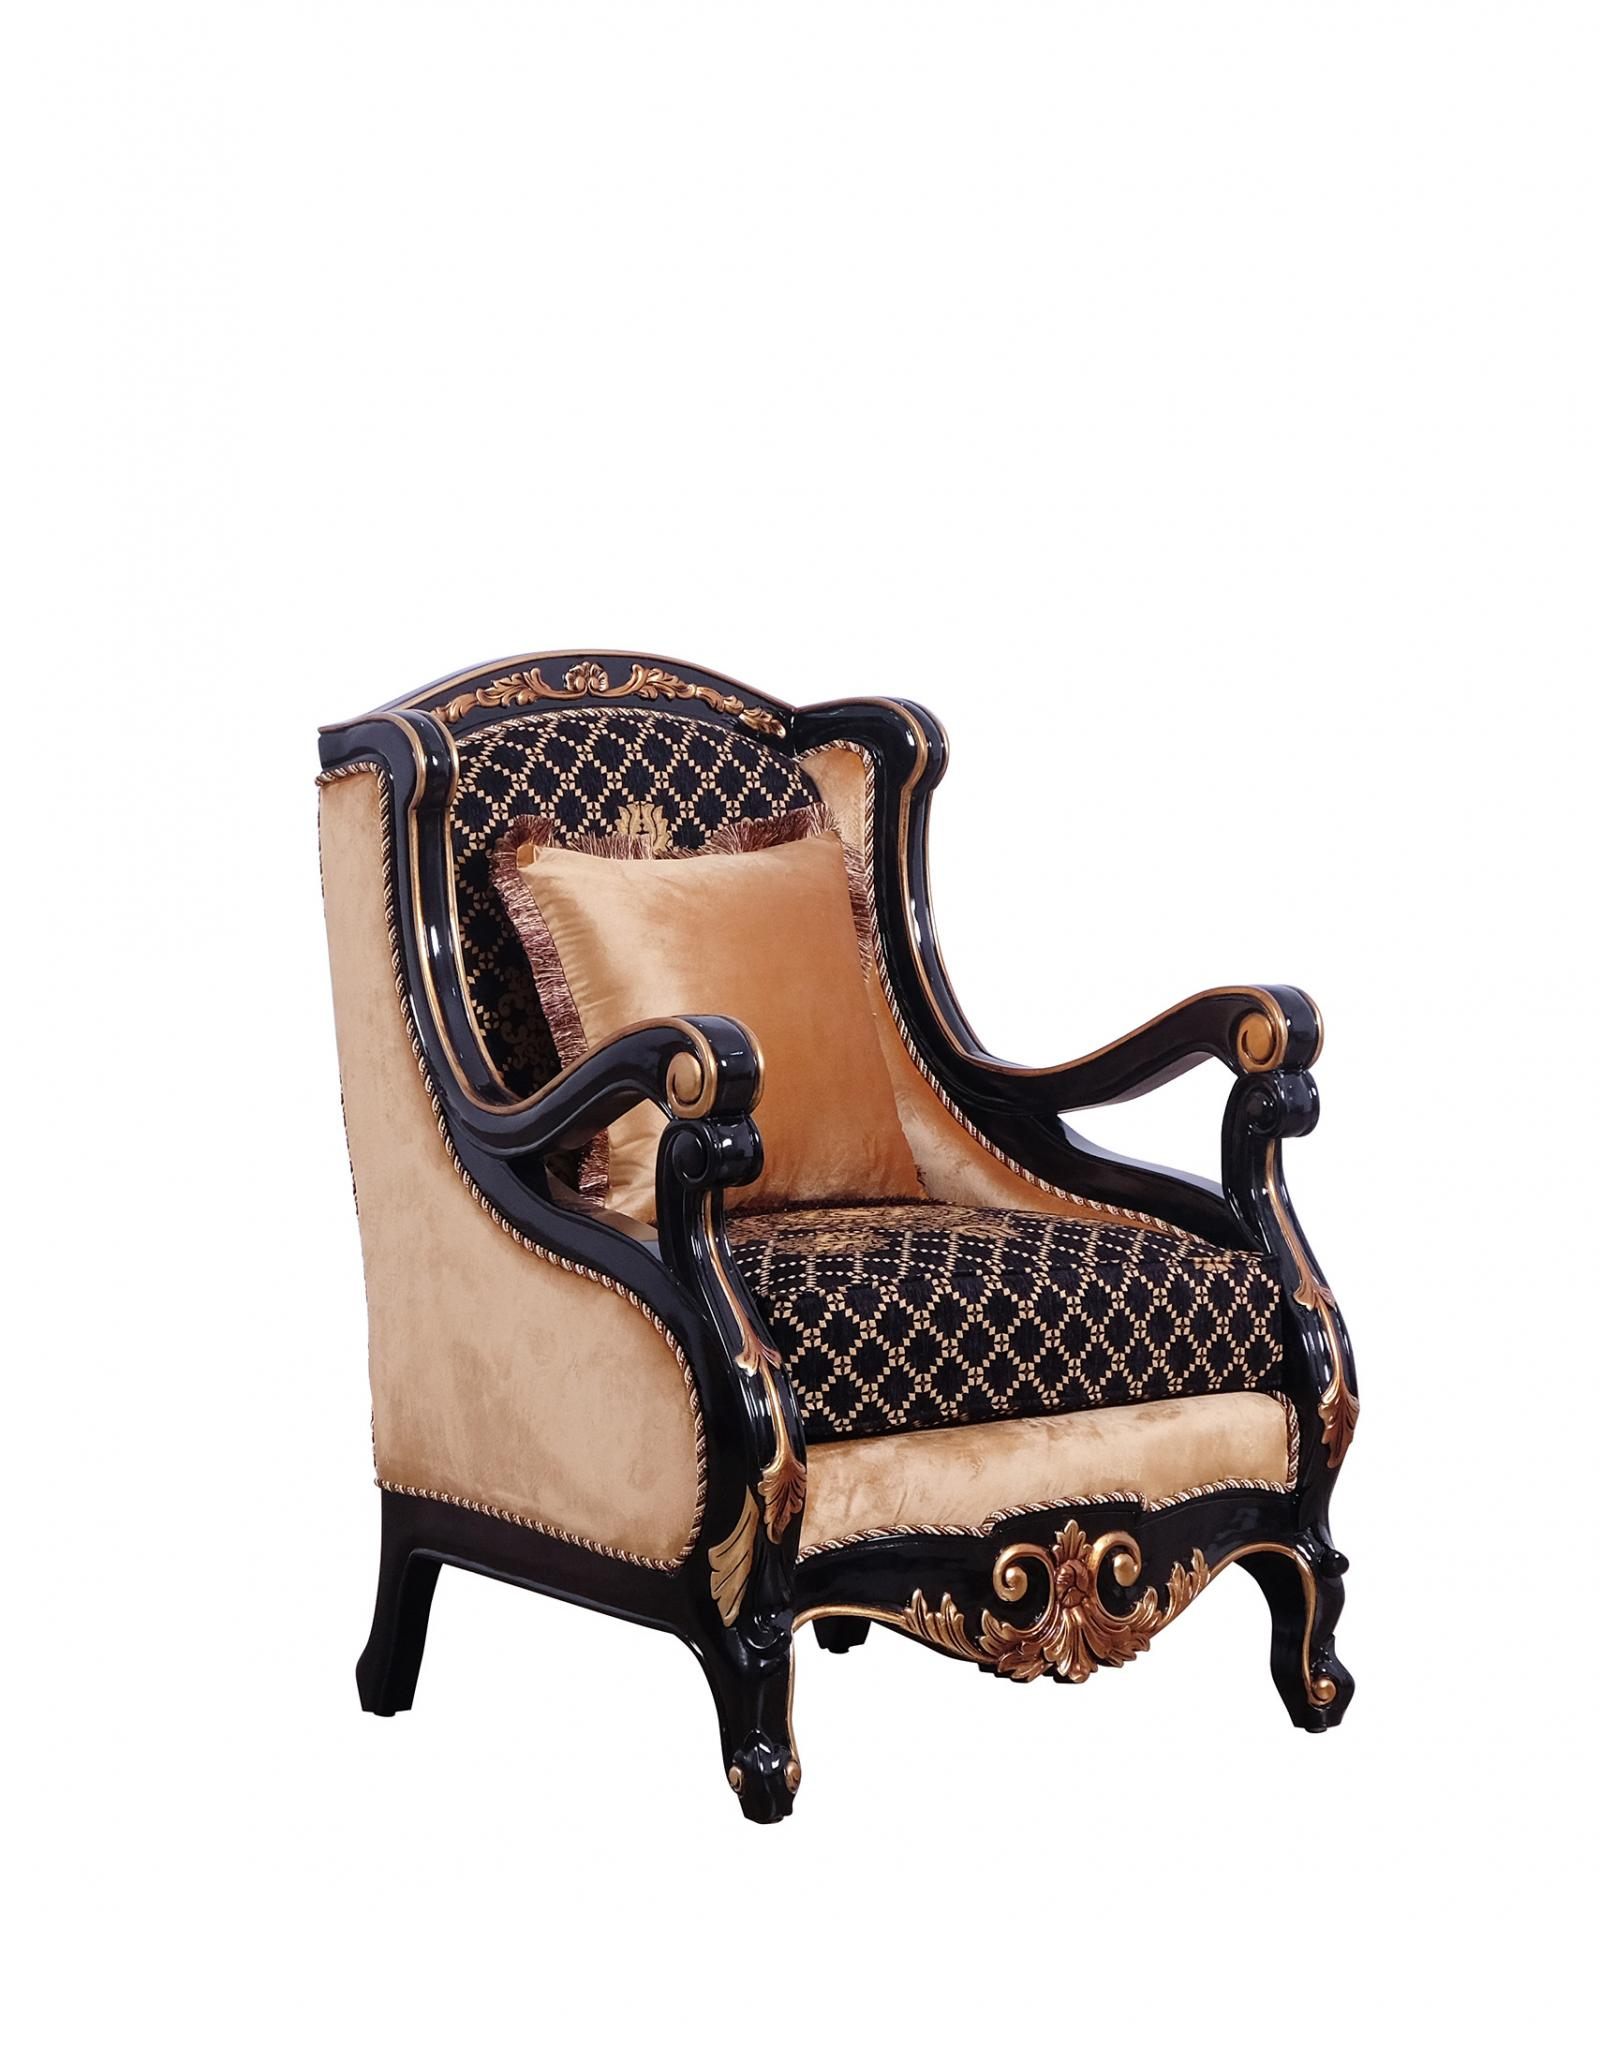 Classic  Traditional Gold  Silver  Antique   Black Wood  Solid Hardwood and Fabric Arm Chair EUROPEAN FURNITURE 41024-C